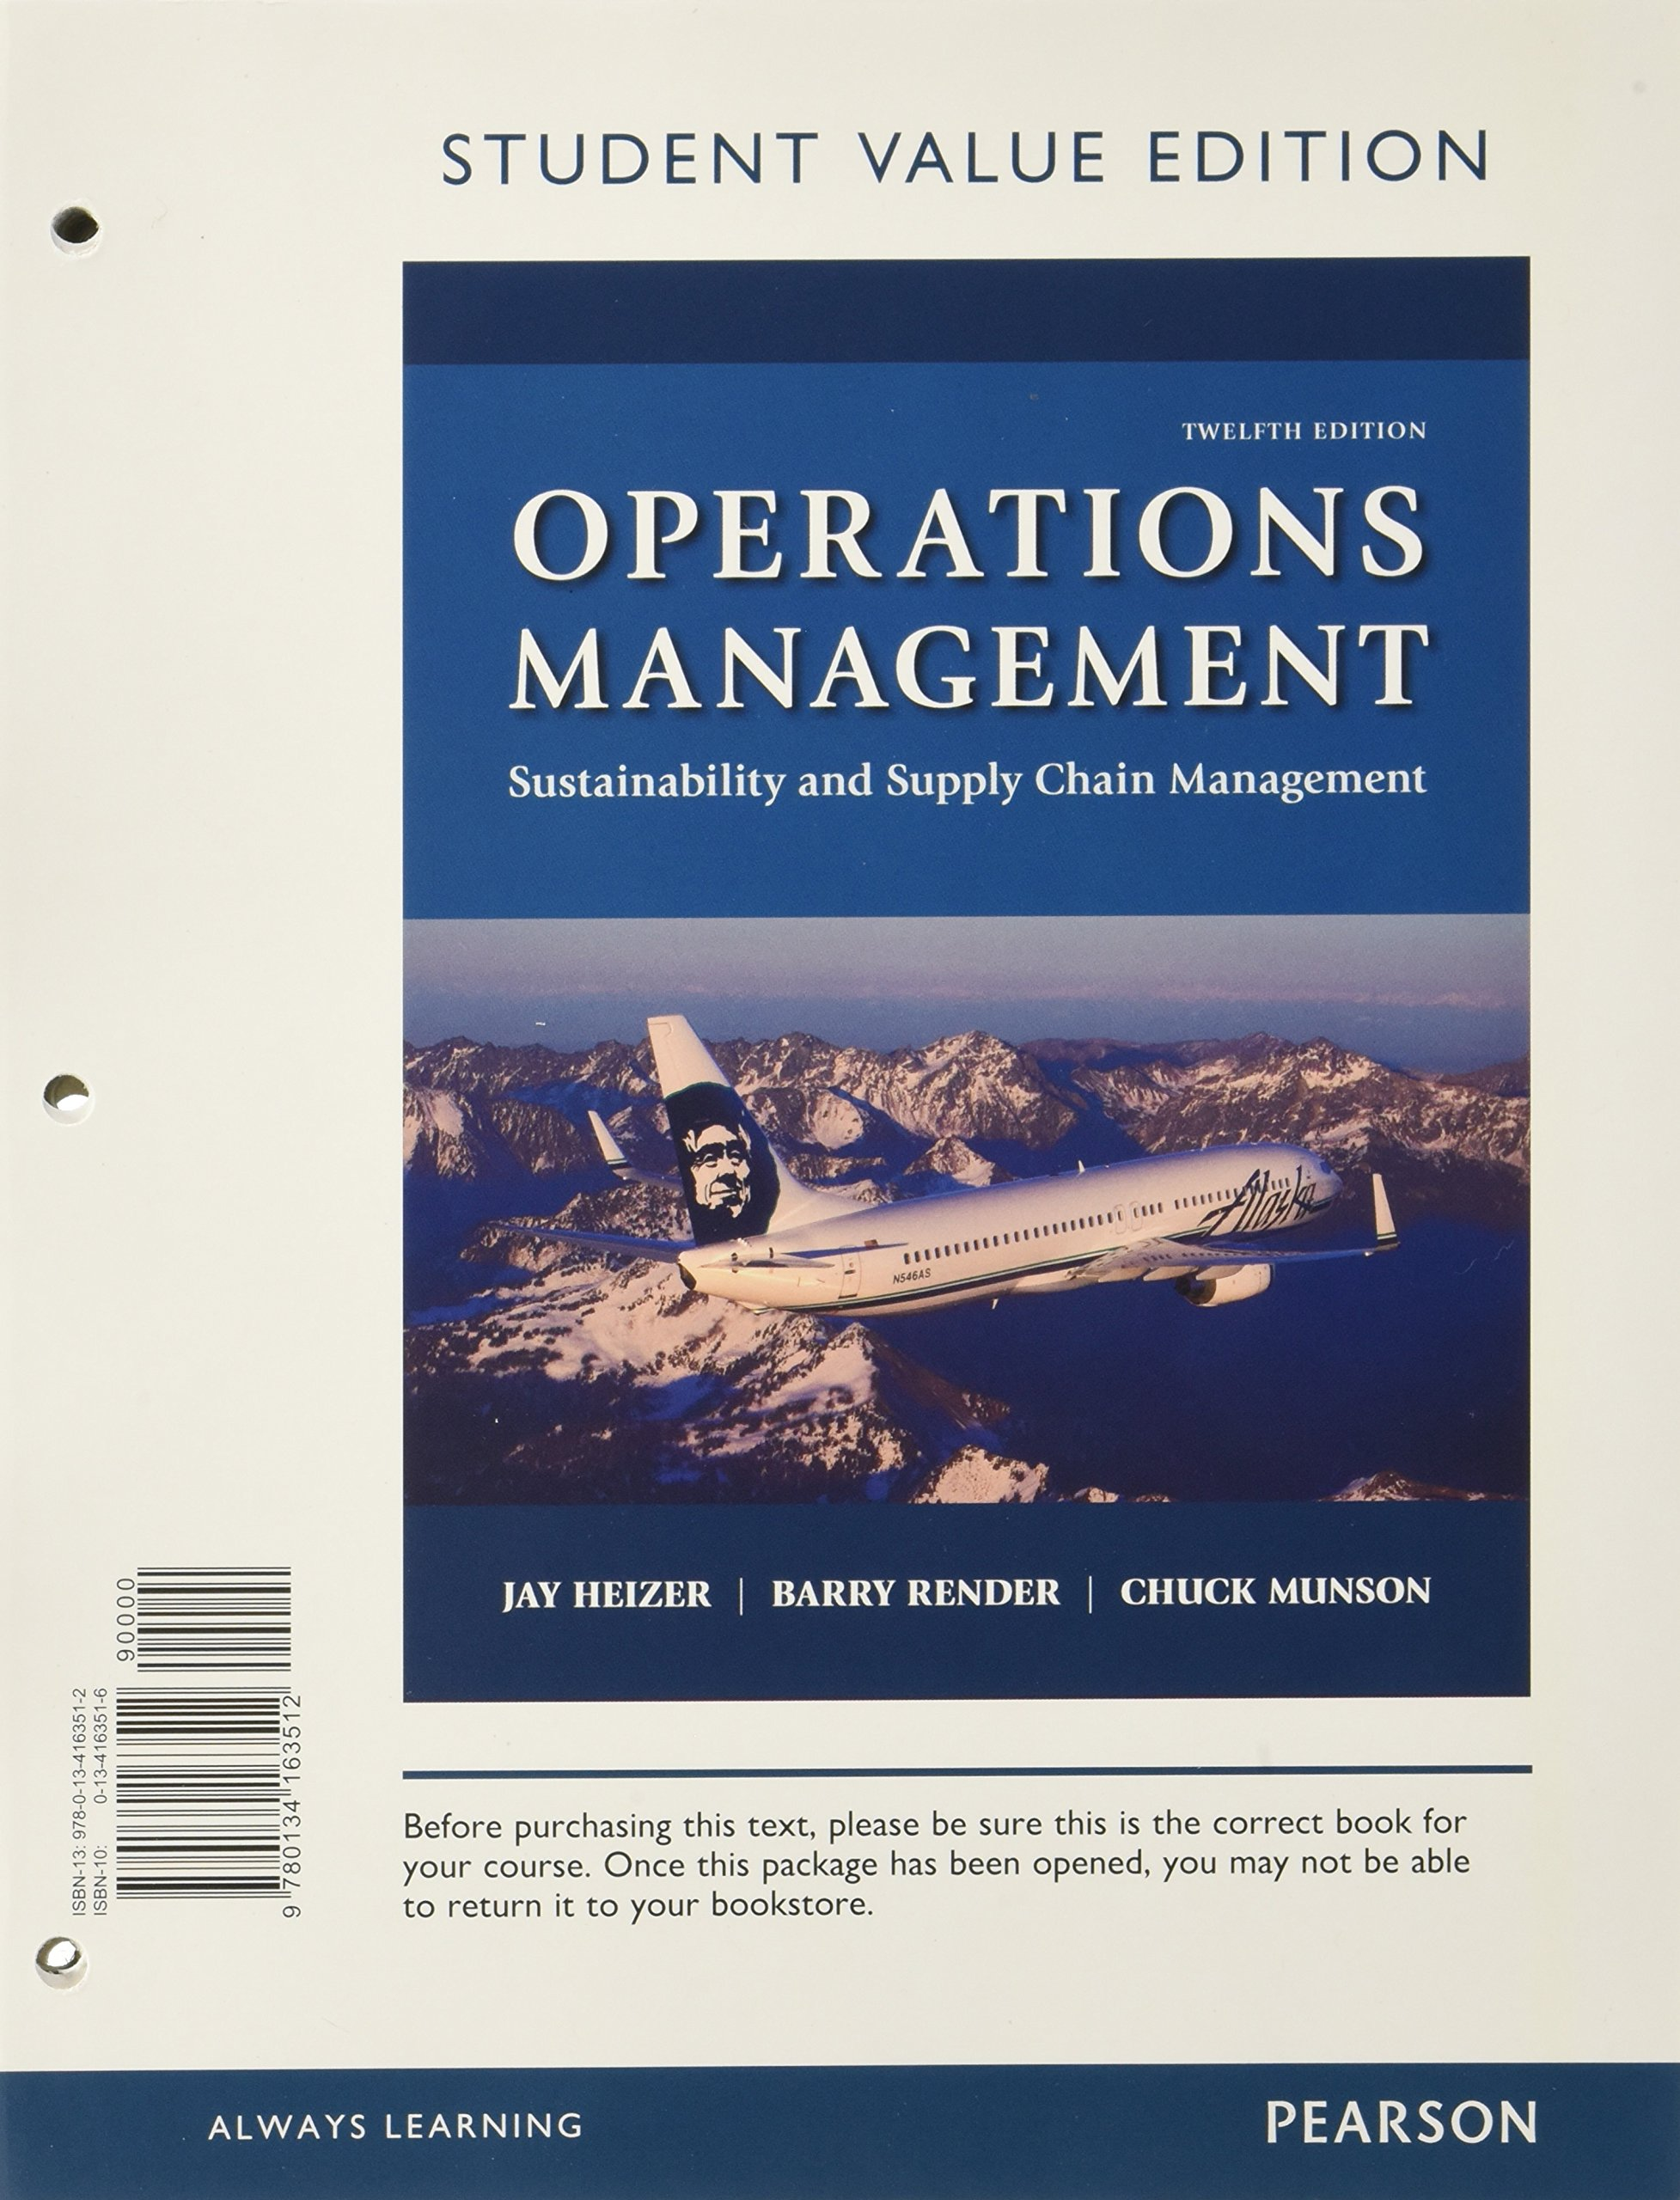 Operations management sustainability and supply chain management operations management sustainability and supply chain management student value edition 12th edition jay heizer barry render chuck munson xflitez Choice Image